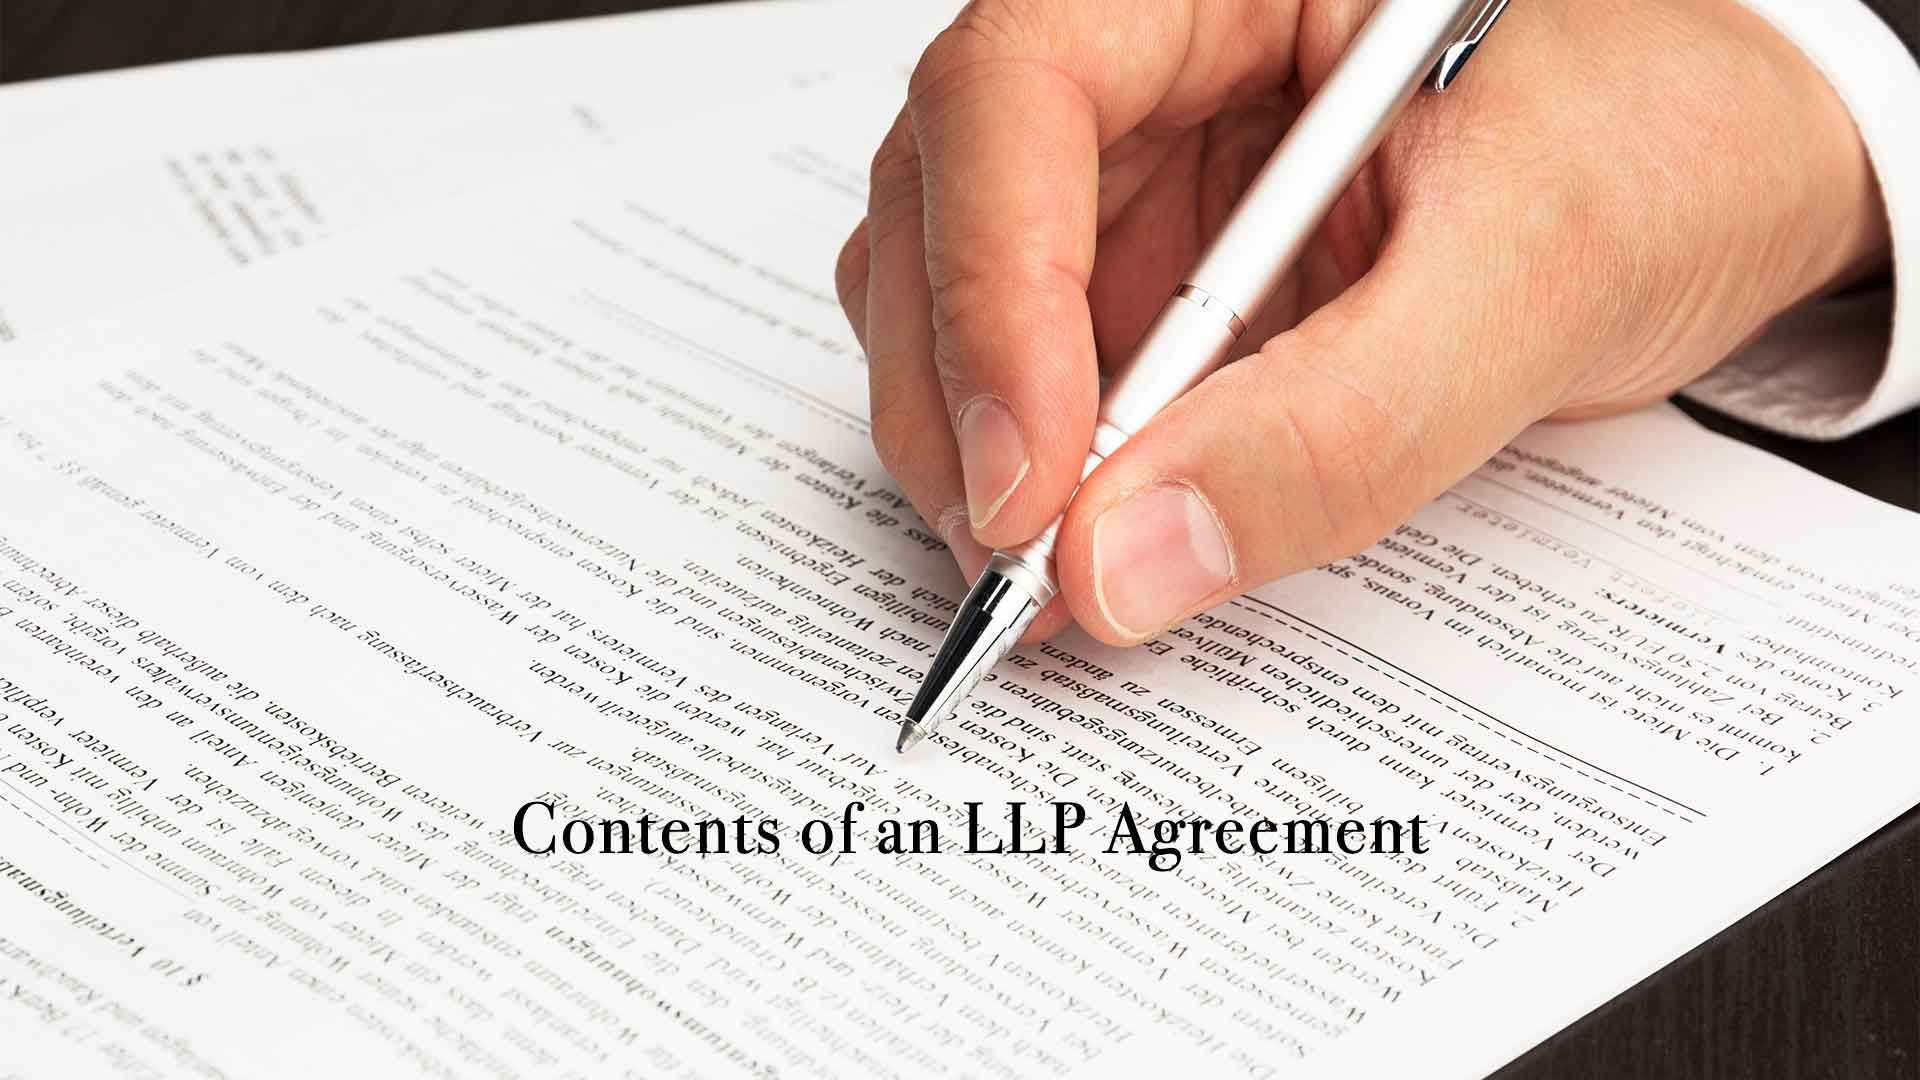 Contents of an LLP Agreement